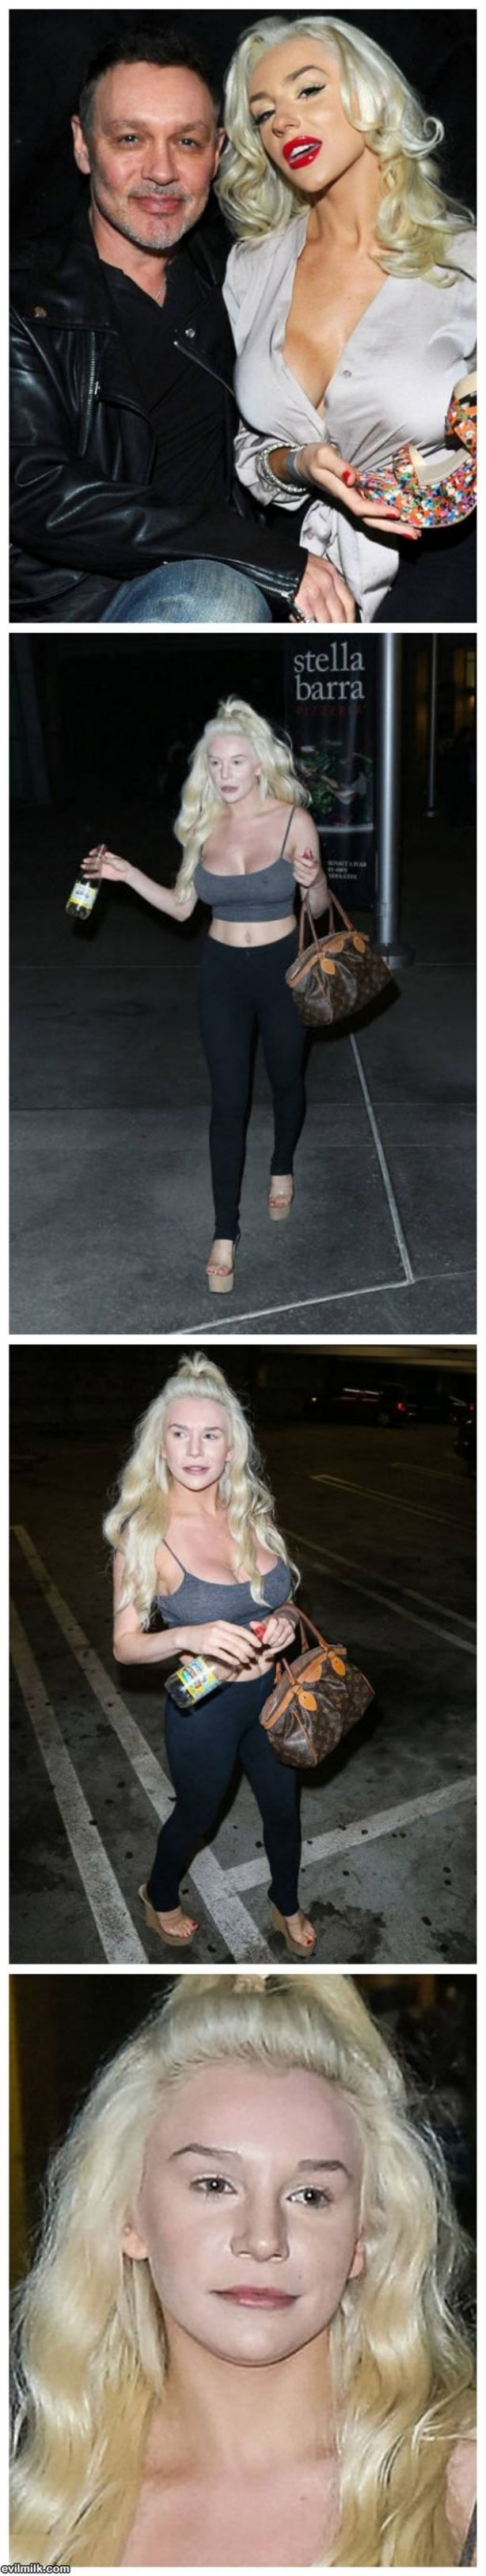 Courtney Stodden Without Makeup http://ibeebz.com